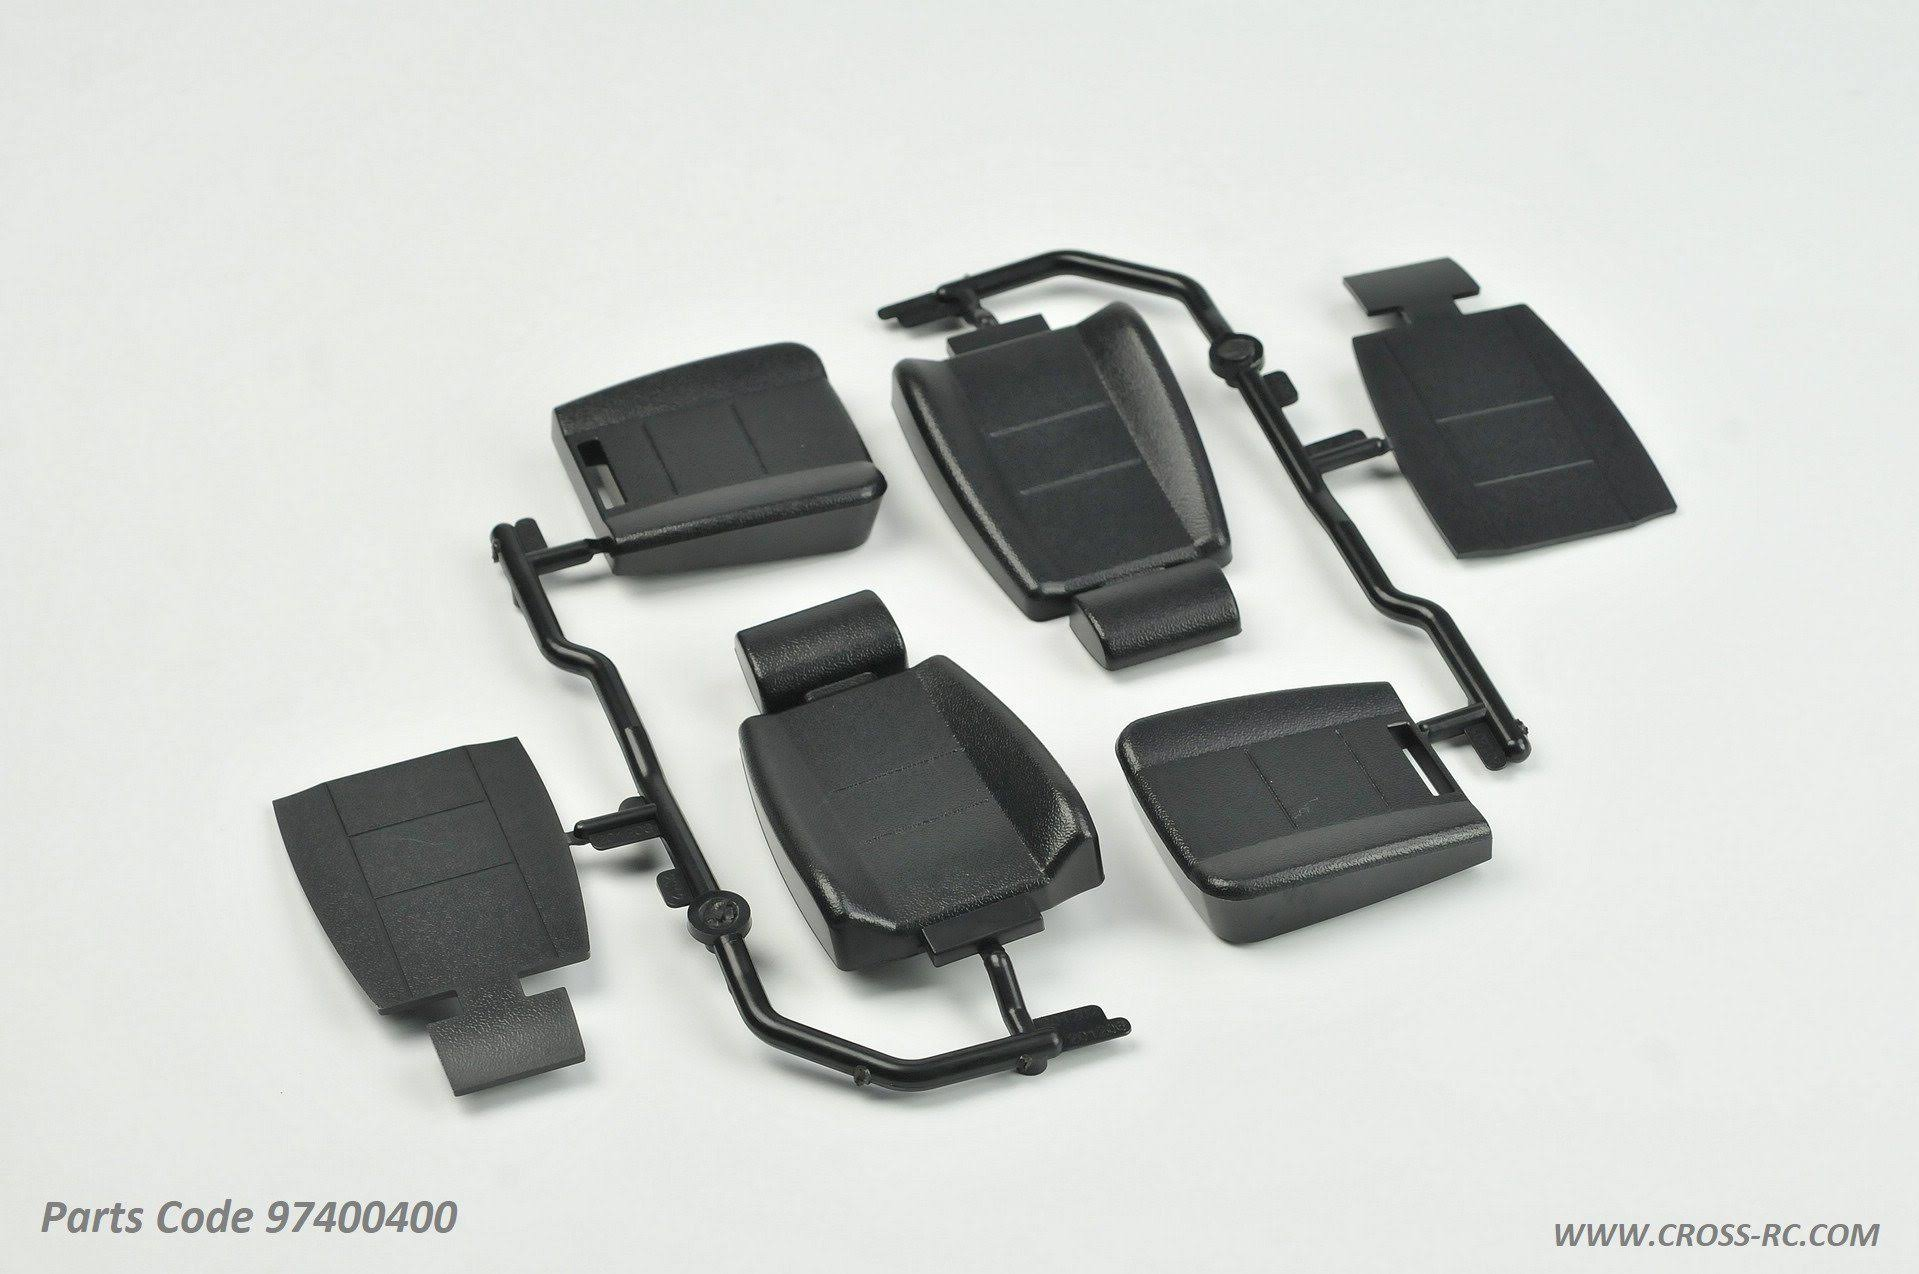 Cross RC SG4 Seat CZR97400400